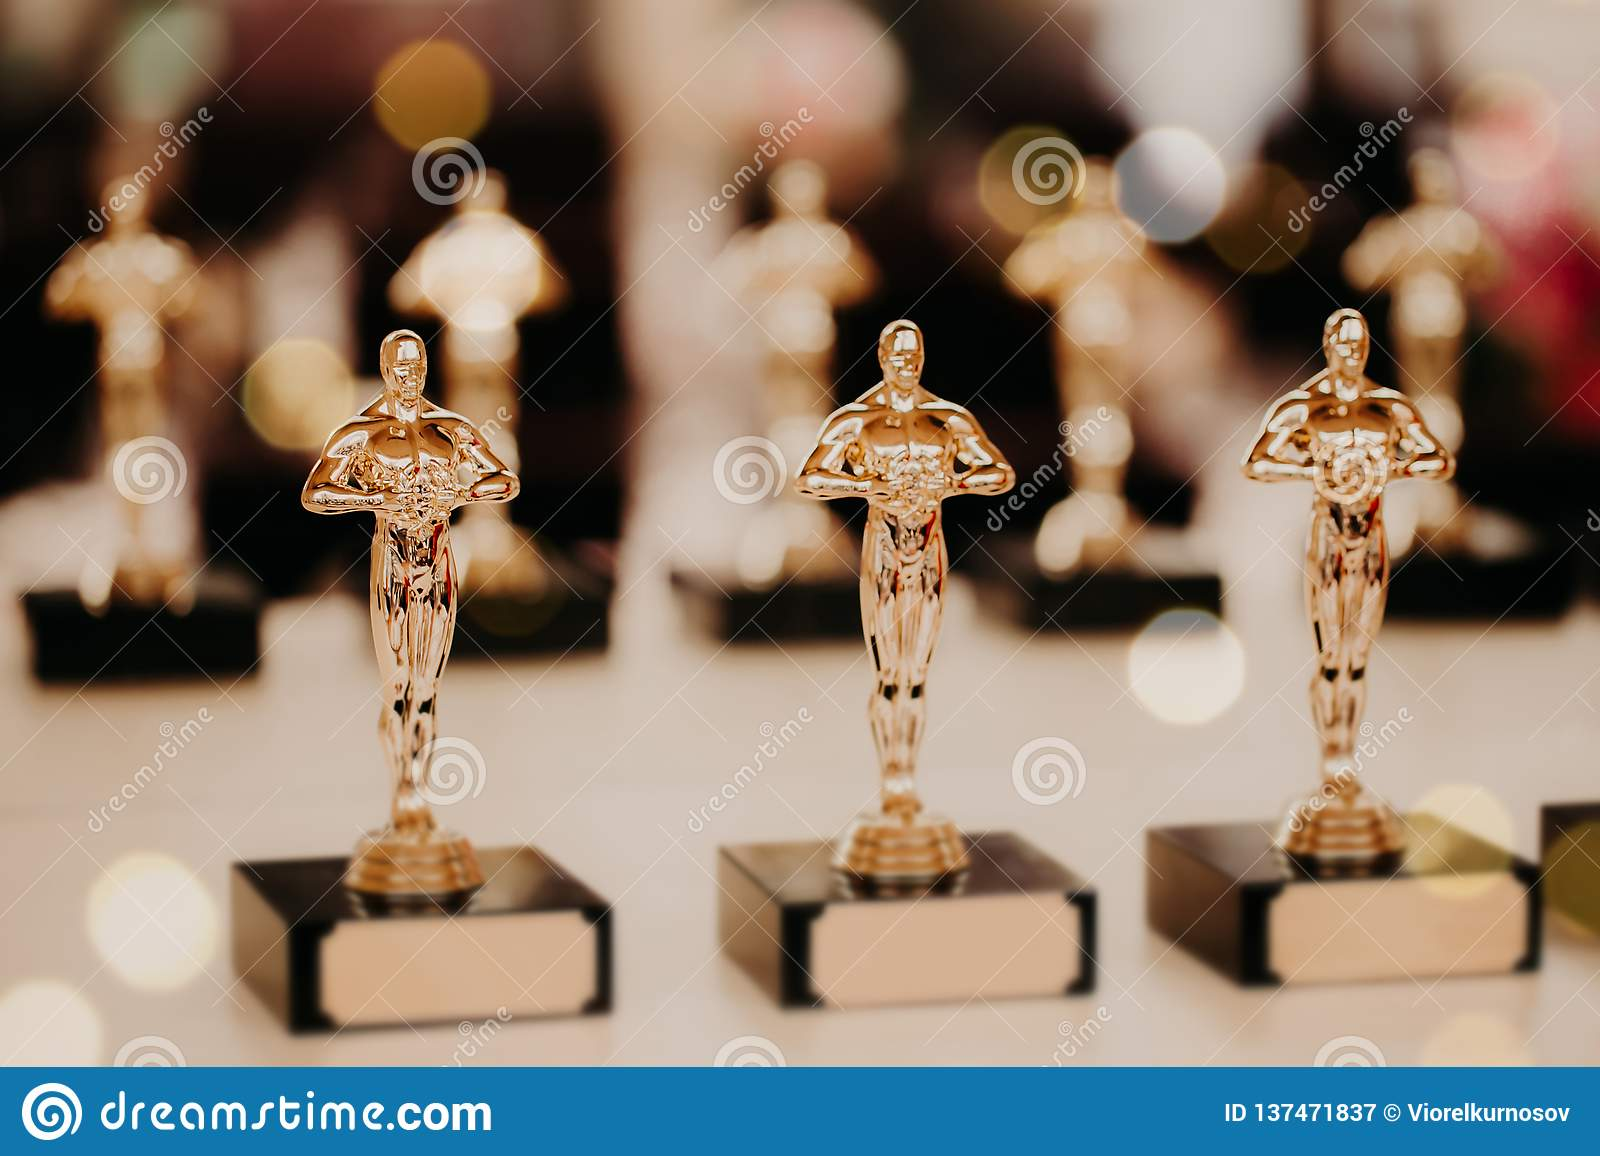 Oscar award. Prize for victory. Golden trophy,. Success concept. Horizontal shot. Prize in film production